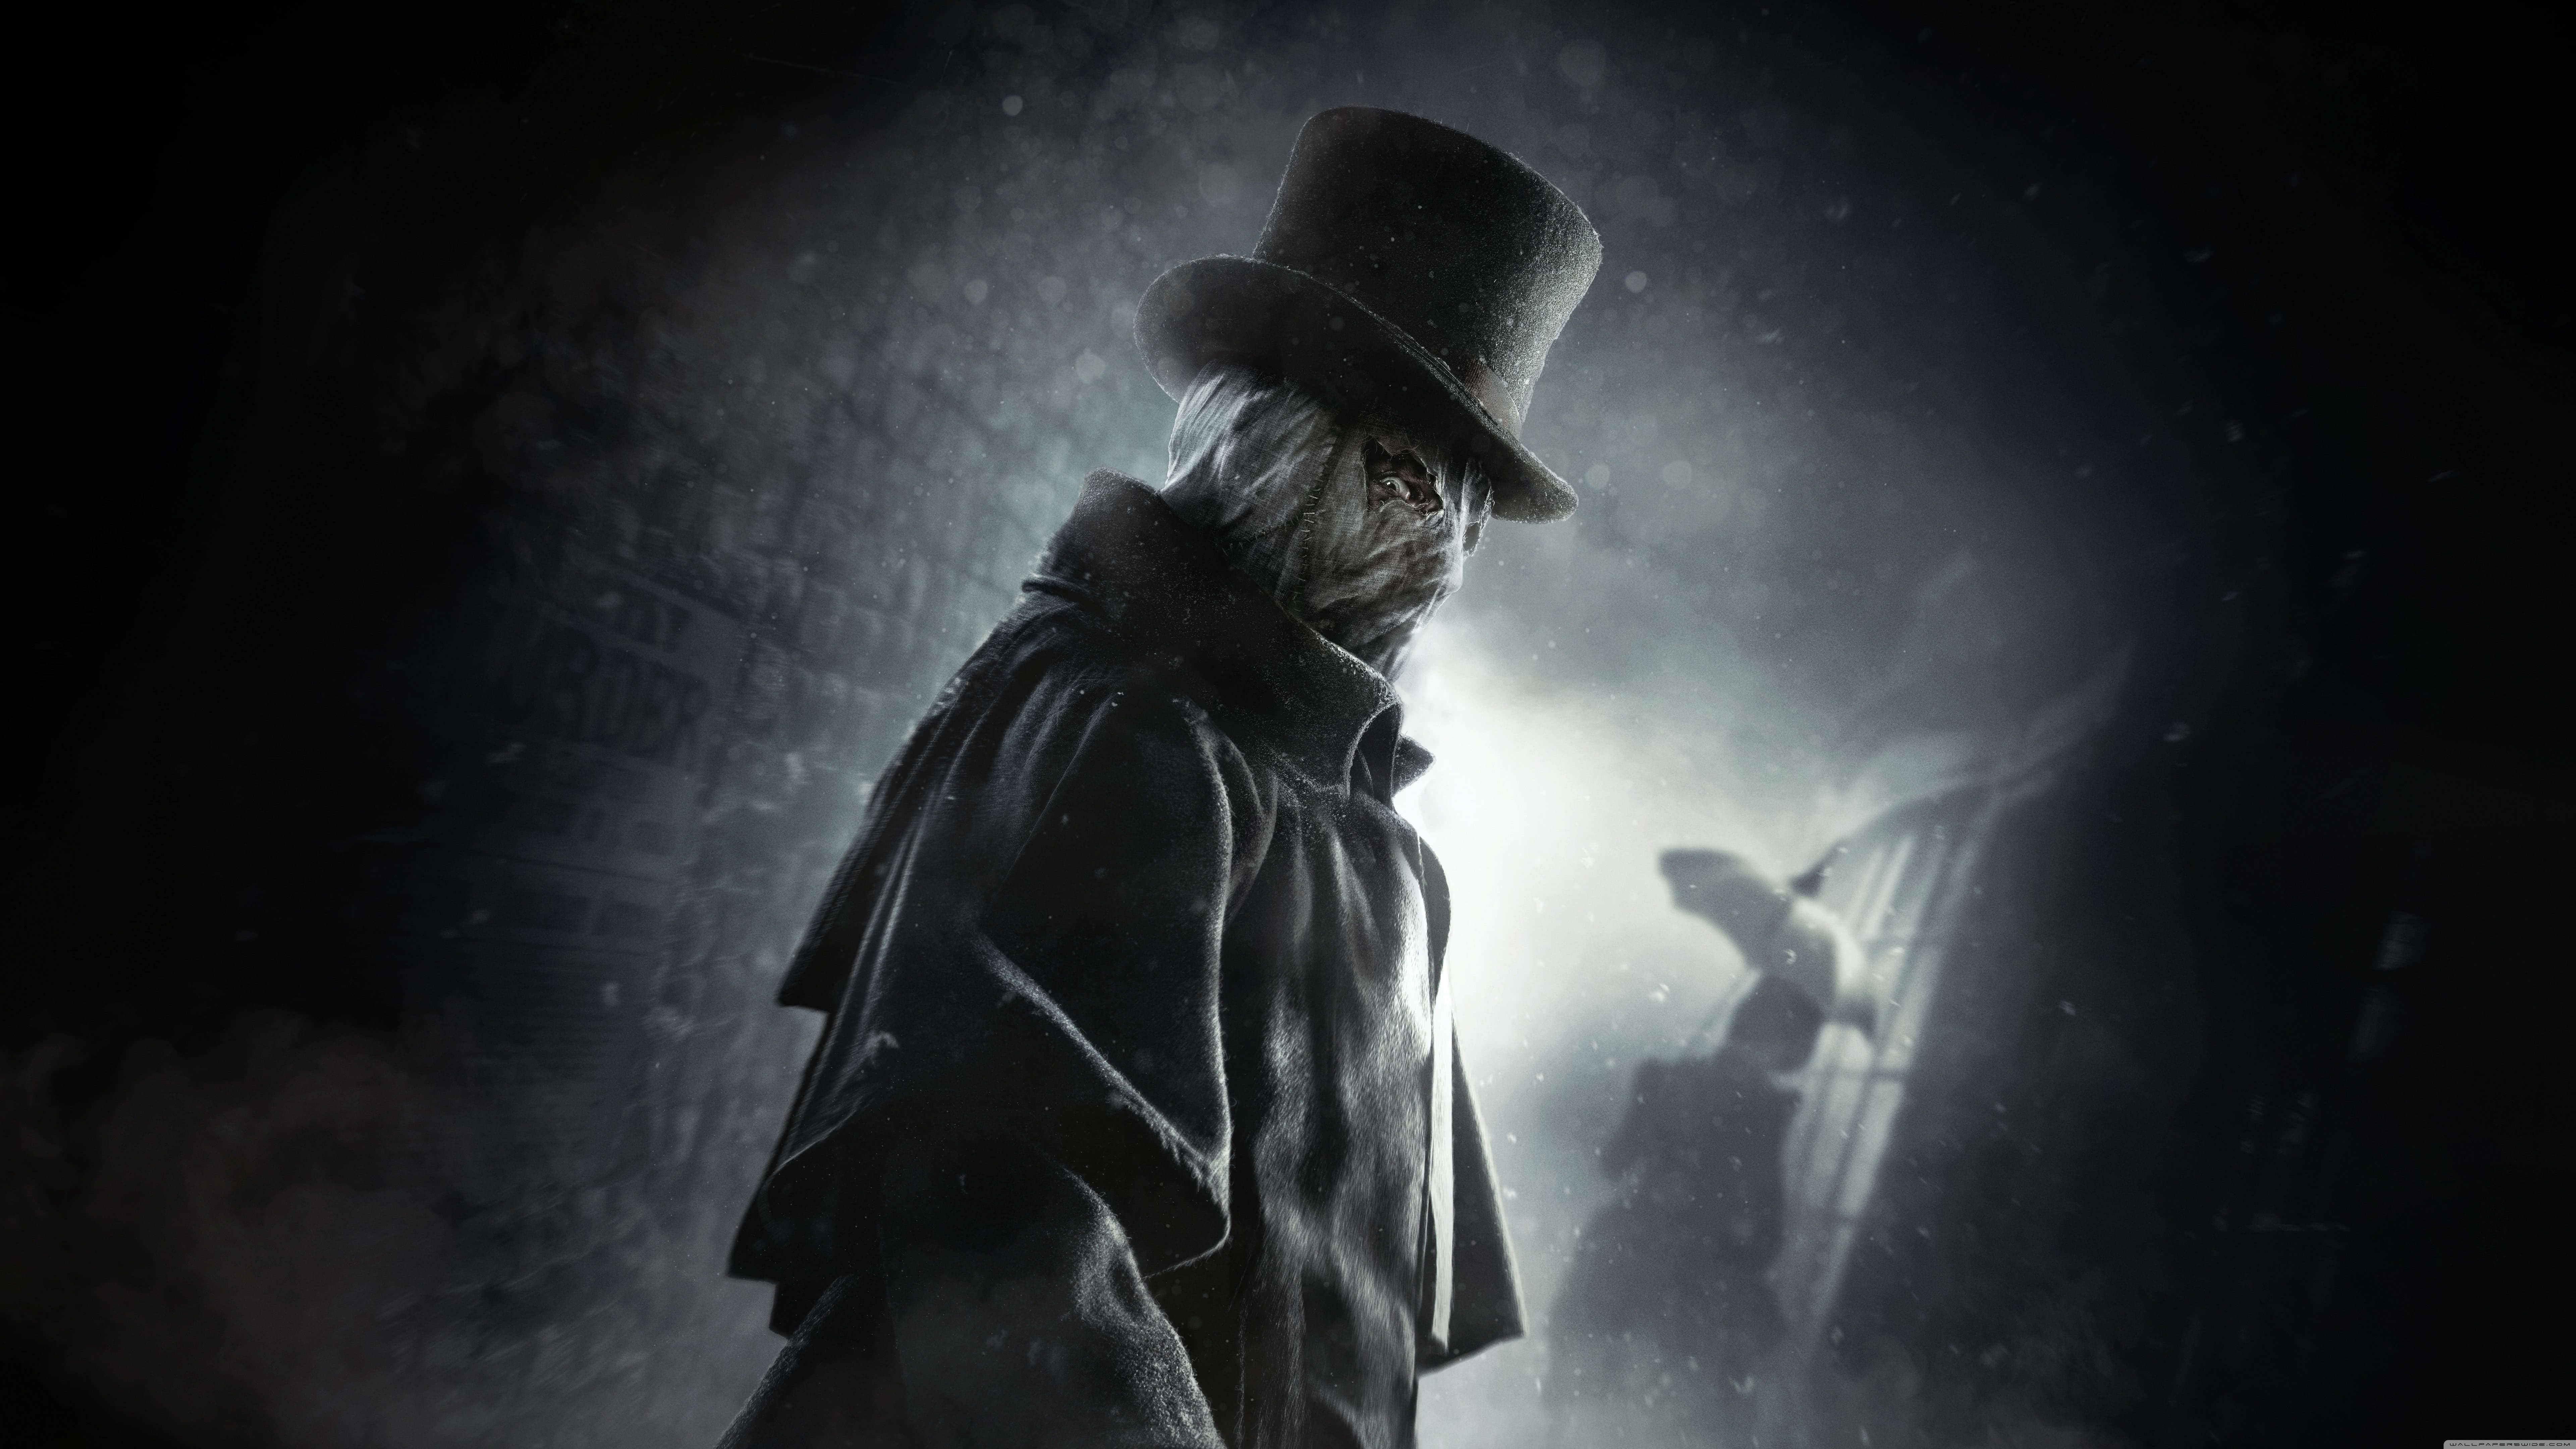 Assassins Creed Syndicate Jack The Ripper Uhd 8k Wallpaper Pixelz Cc